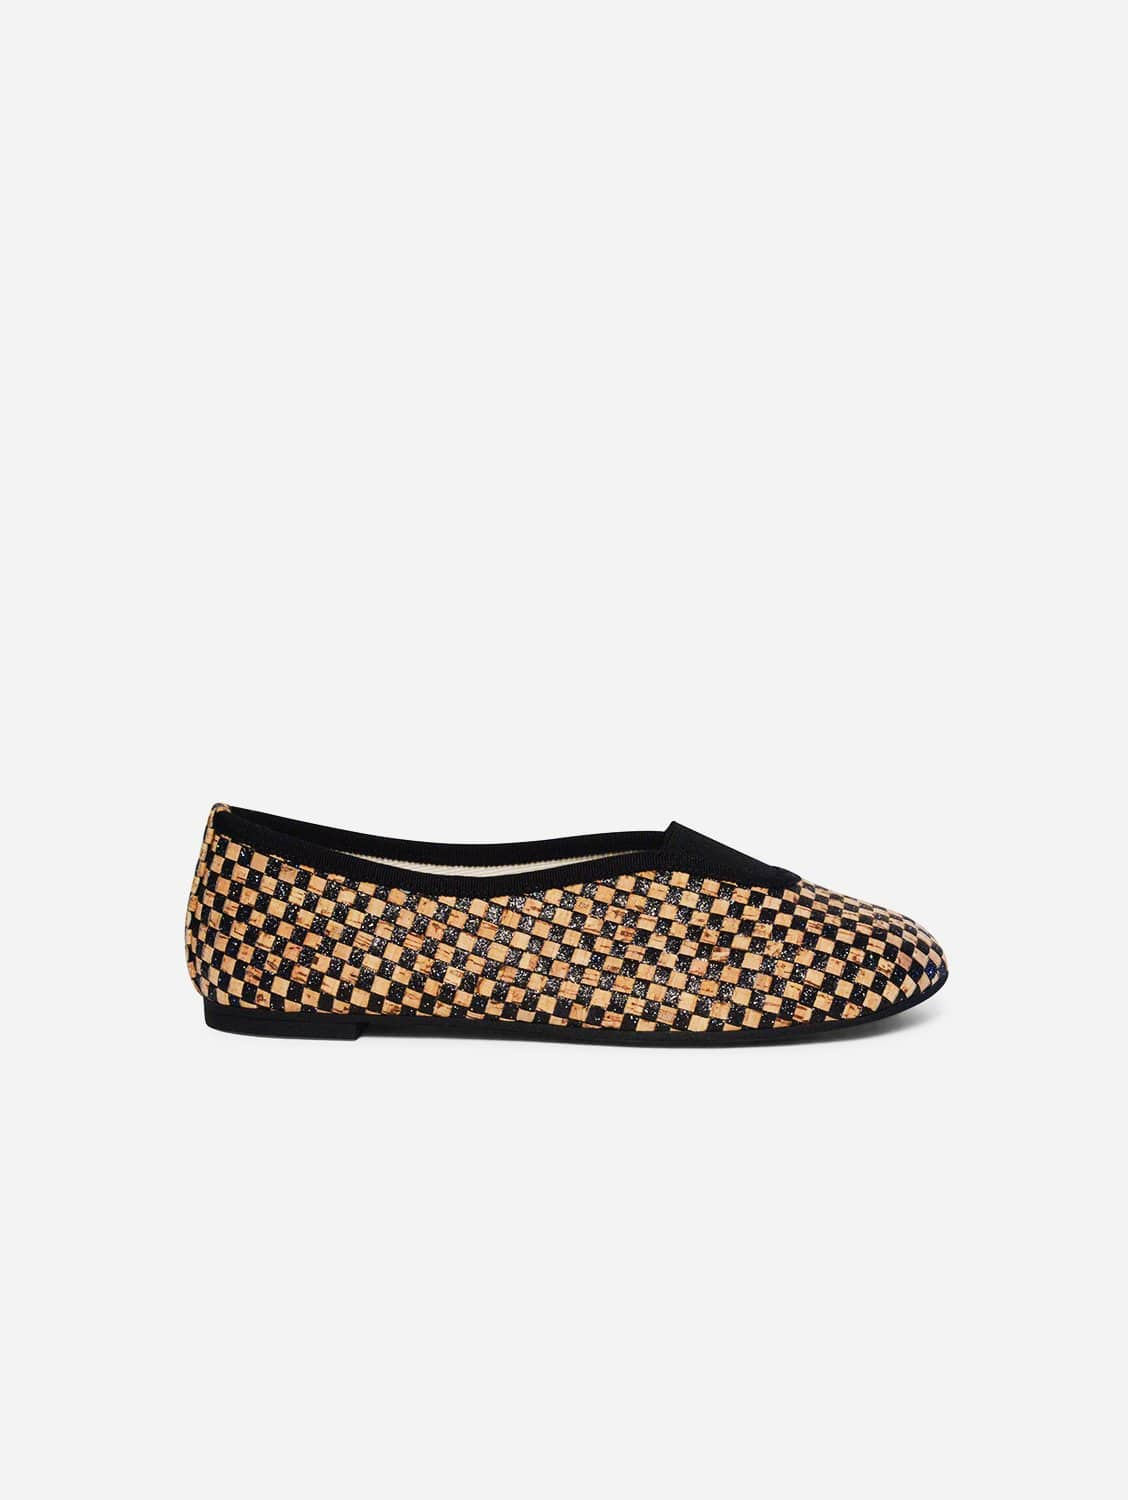 Rhythmic Vegan Ballet Flats | Checkered Glittery Black Cork